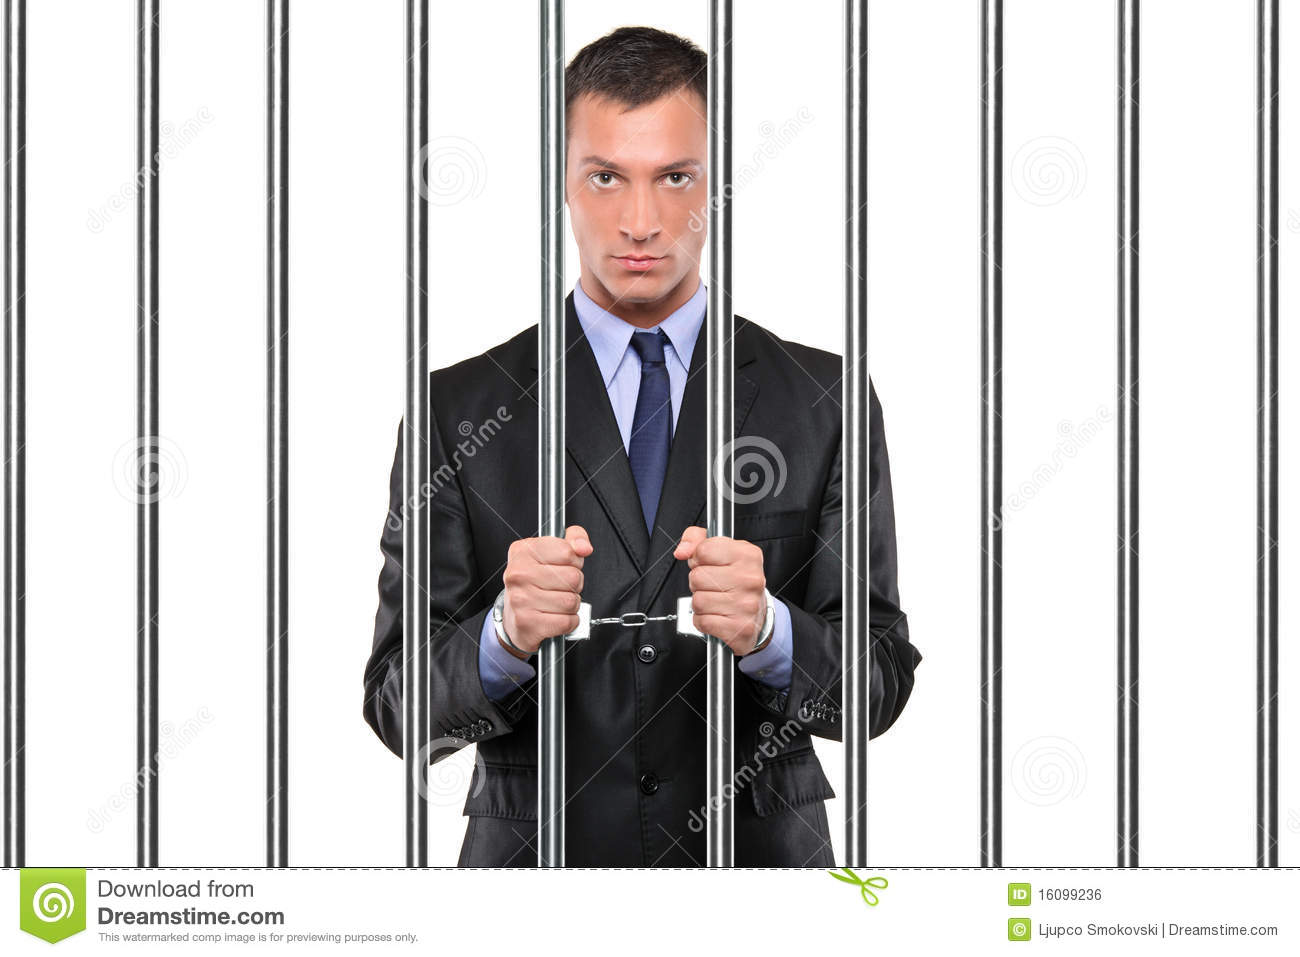 Handcuffed Businessman In Jail Holding Bars Royalty Free Stock Image